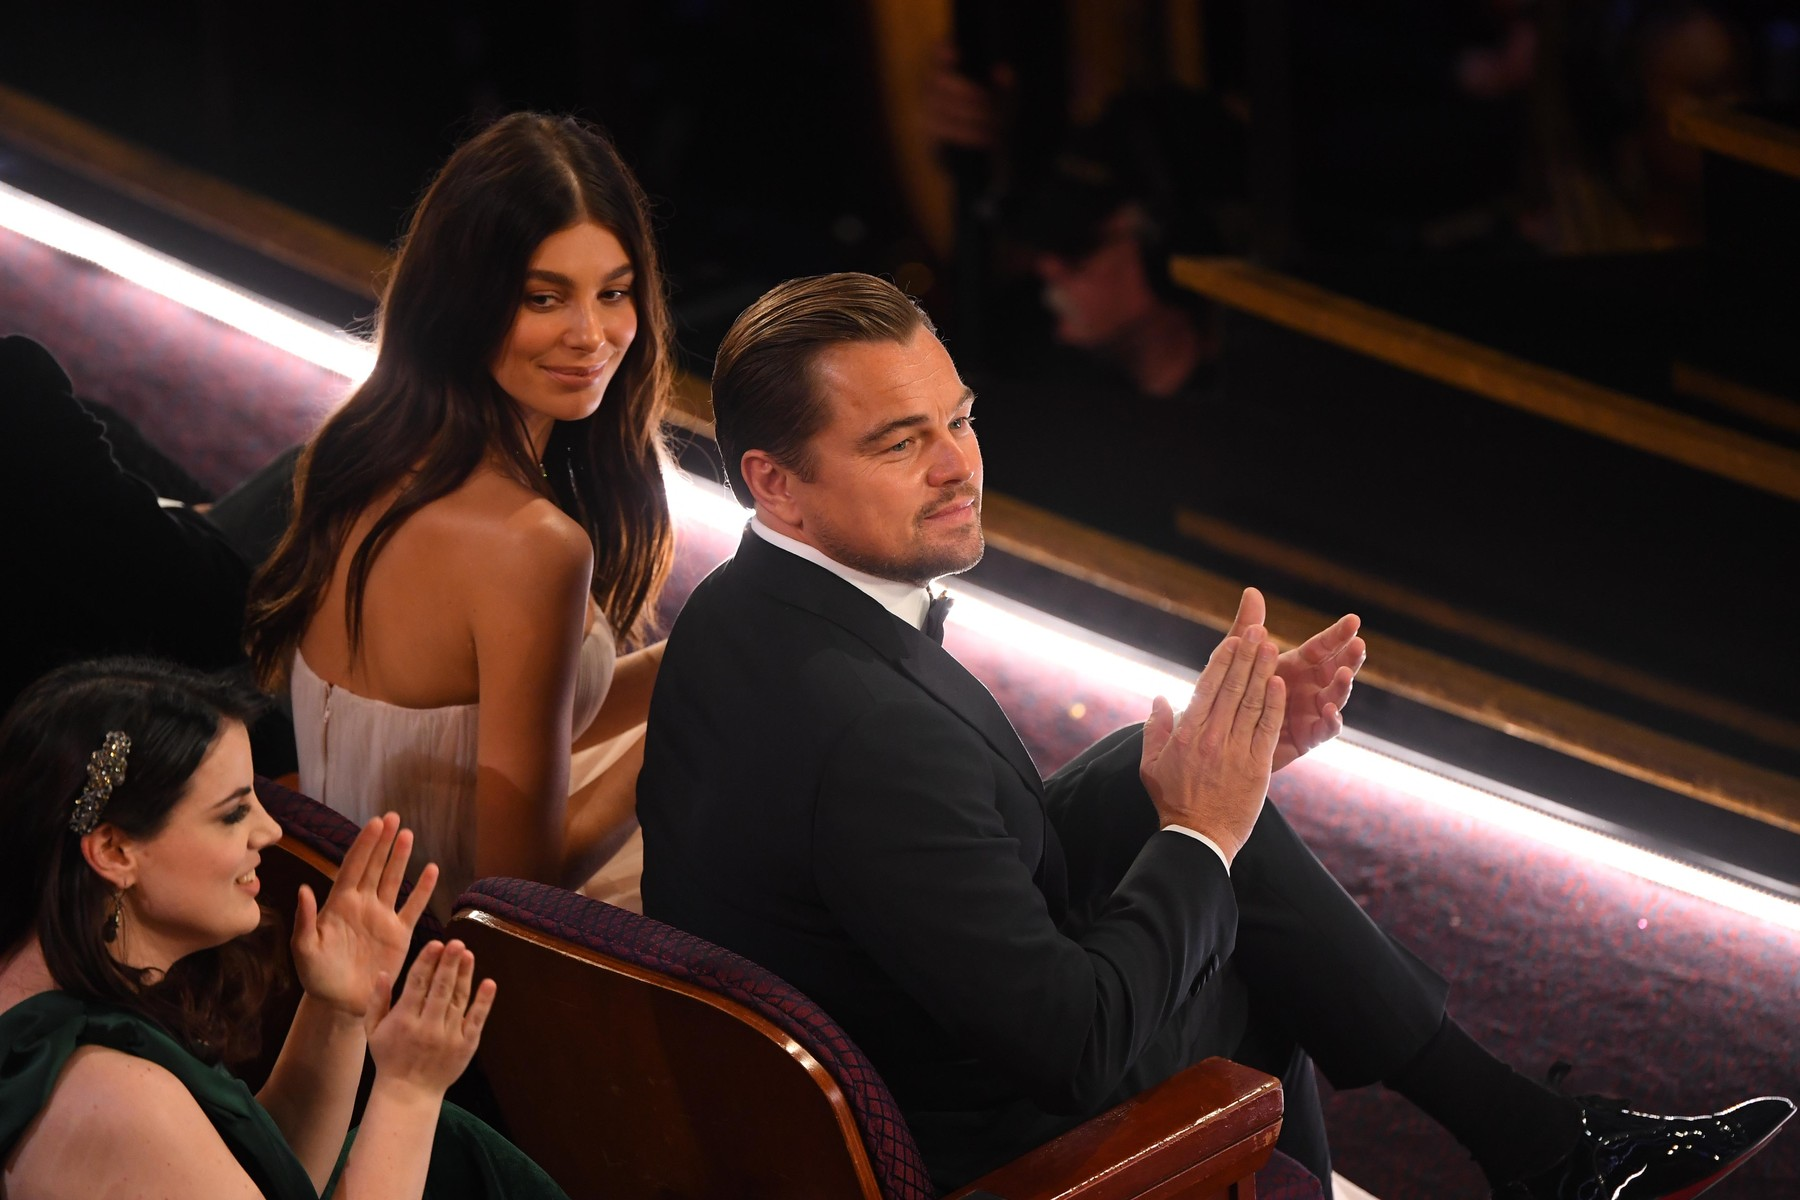 Feb 9, 2020; Los Angeles, CA, USA;   Leonardo Dicaprio (right) and Camila Morrone in the audience during the 92nd Academy Awards at Dolby Theatre., Image: 497506017, License: Rights-managed, Restrictions: *** World Rights ***, Model Release: no, Credit line: USA TODAY Network / ddp USA / Profimedia